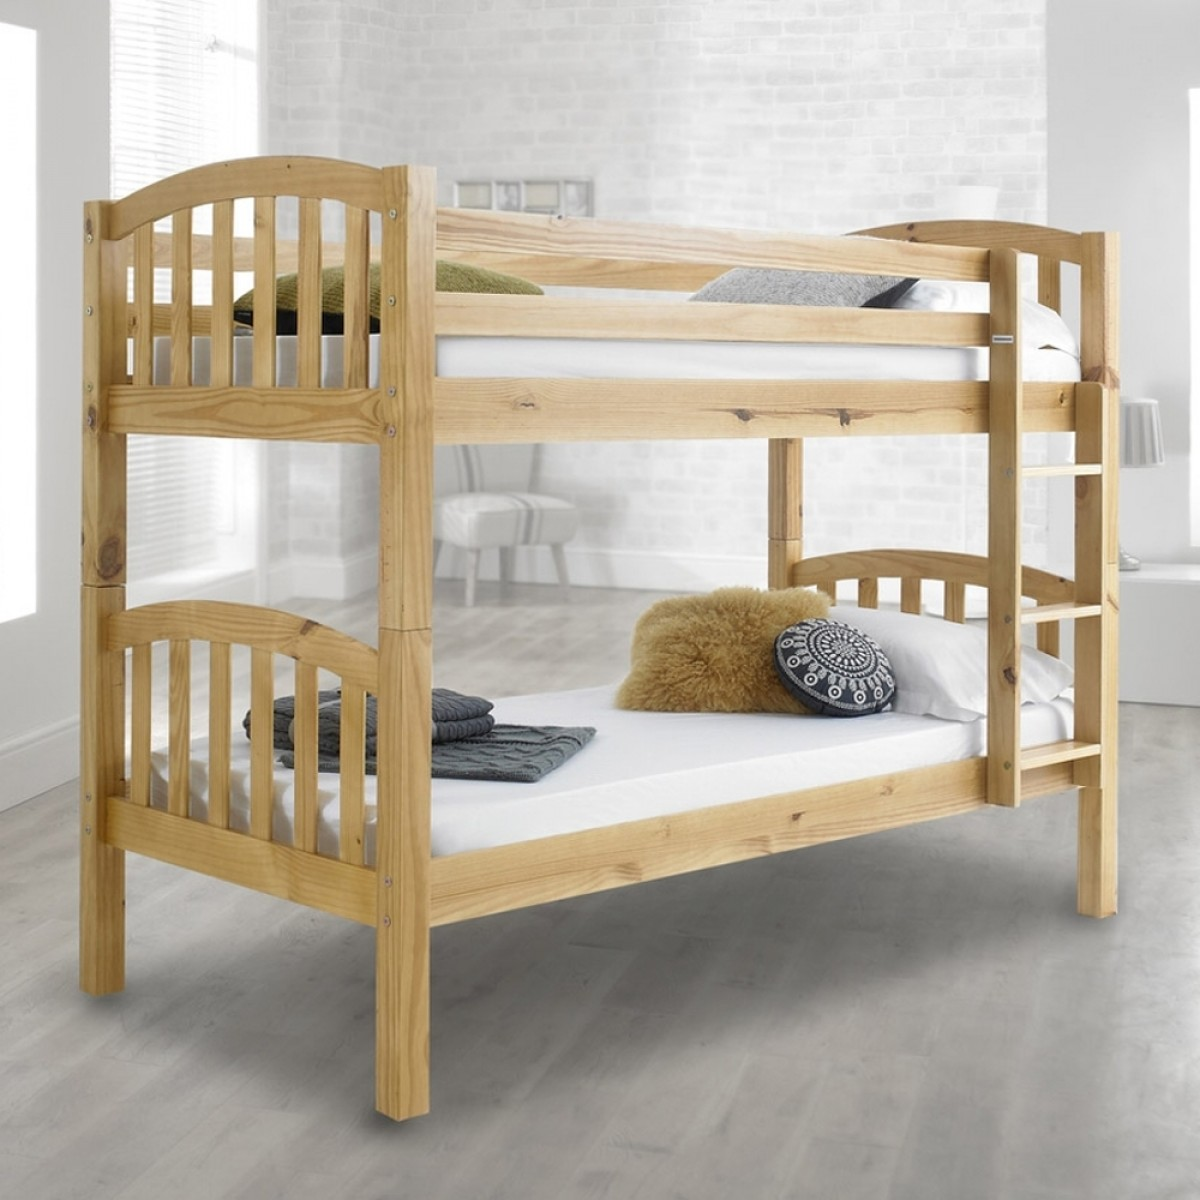 American Solid Honey Pine Wooden Bunk Bed